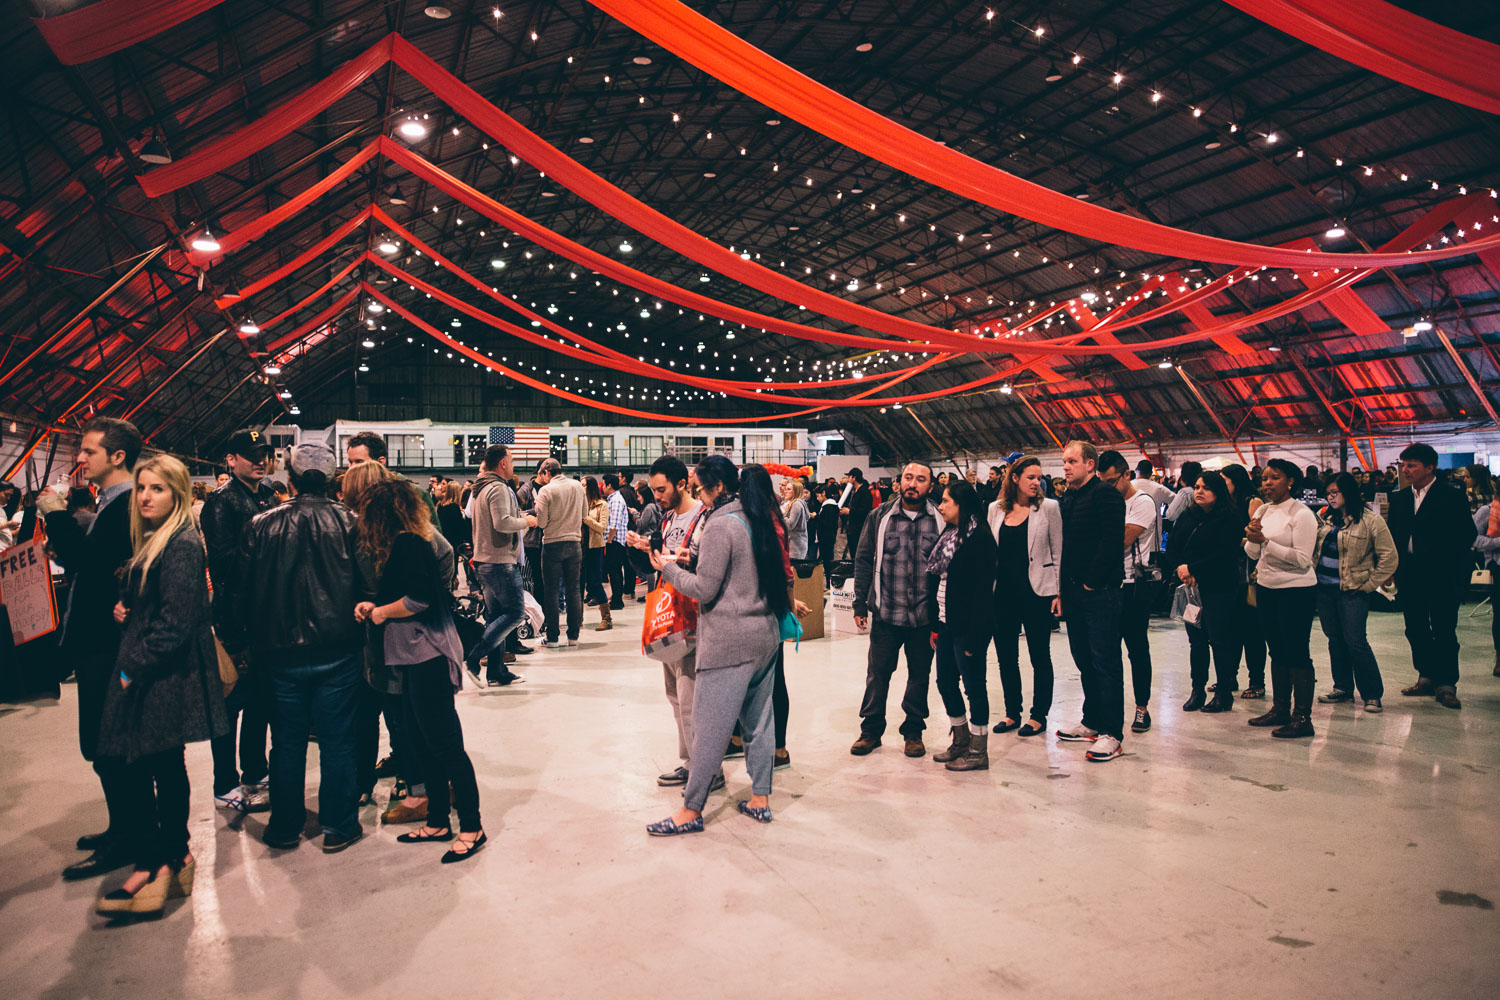 Long lines and elegant streamers at the Taste of Night Market